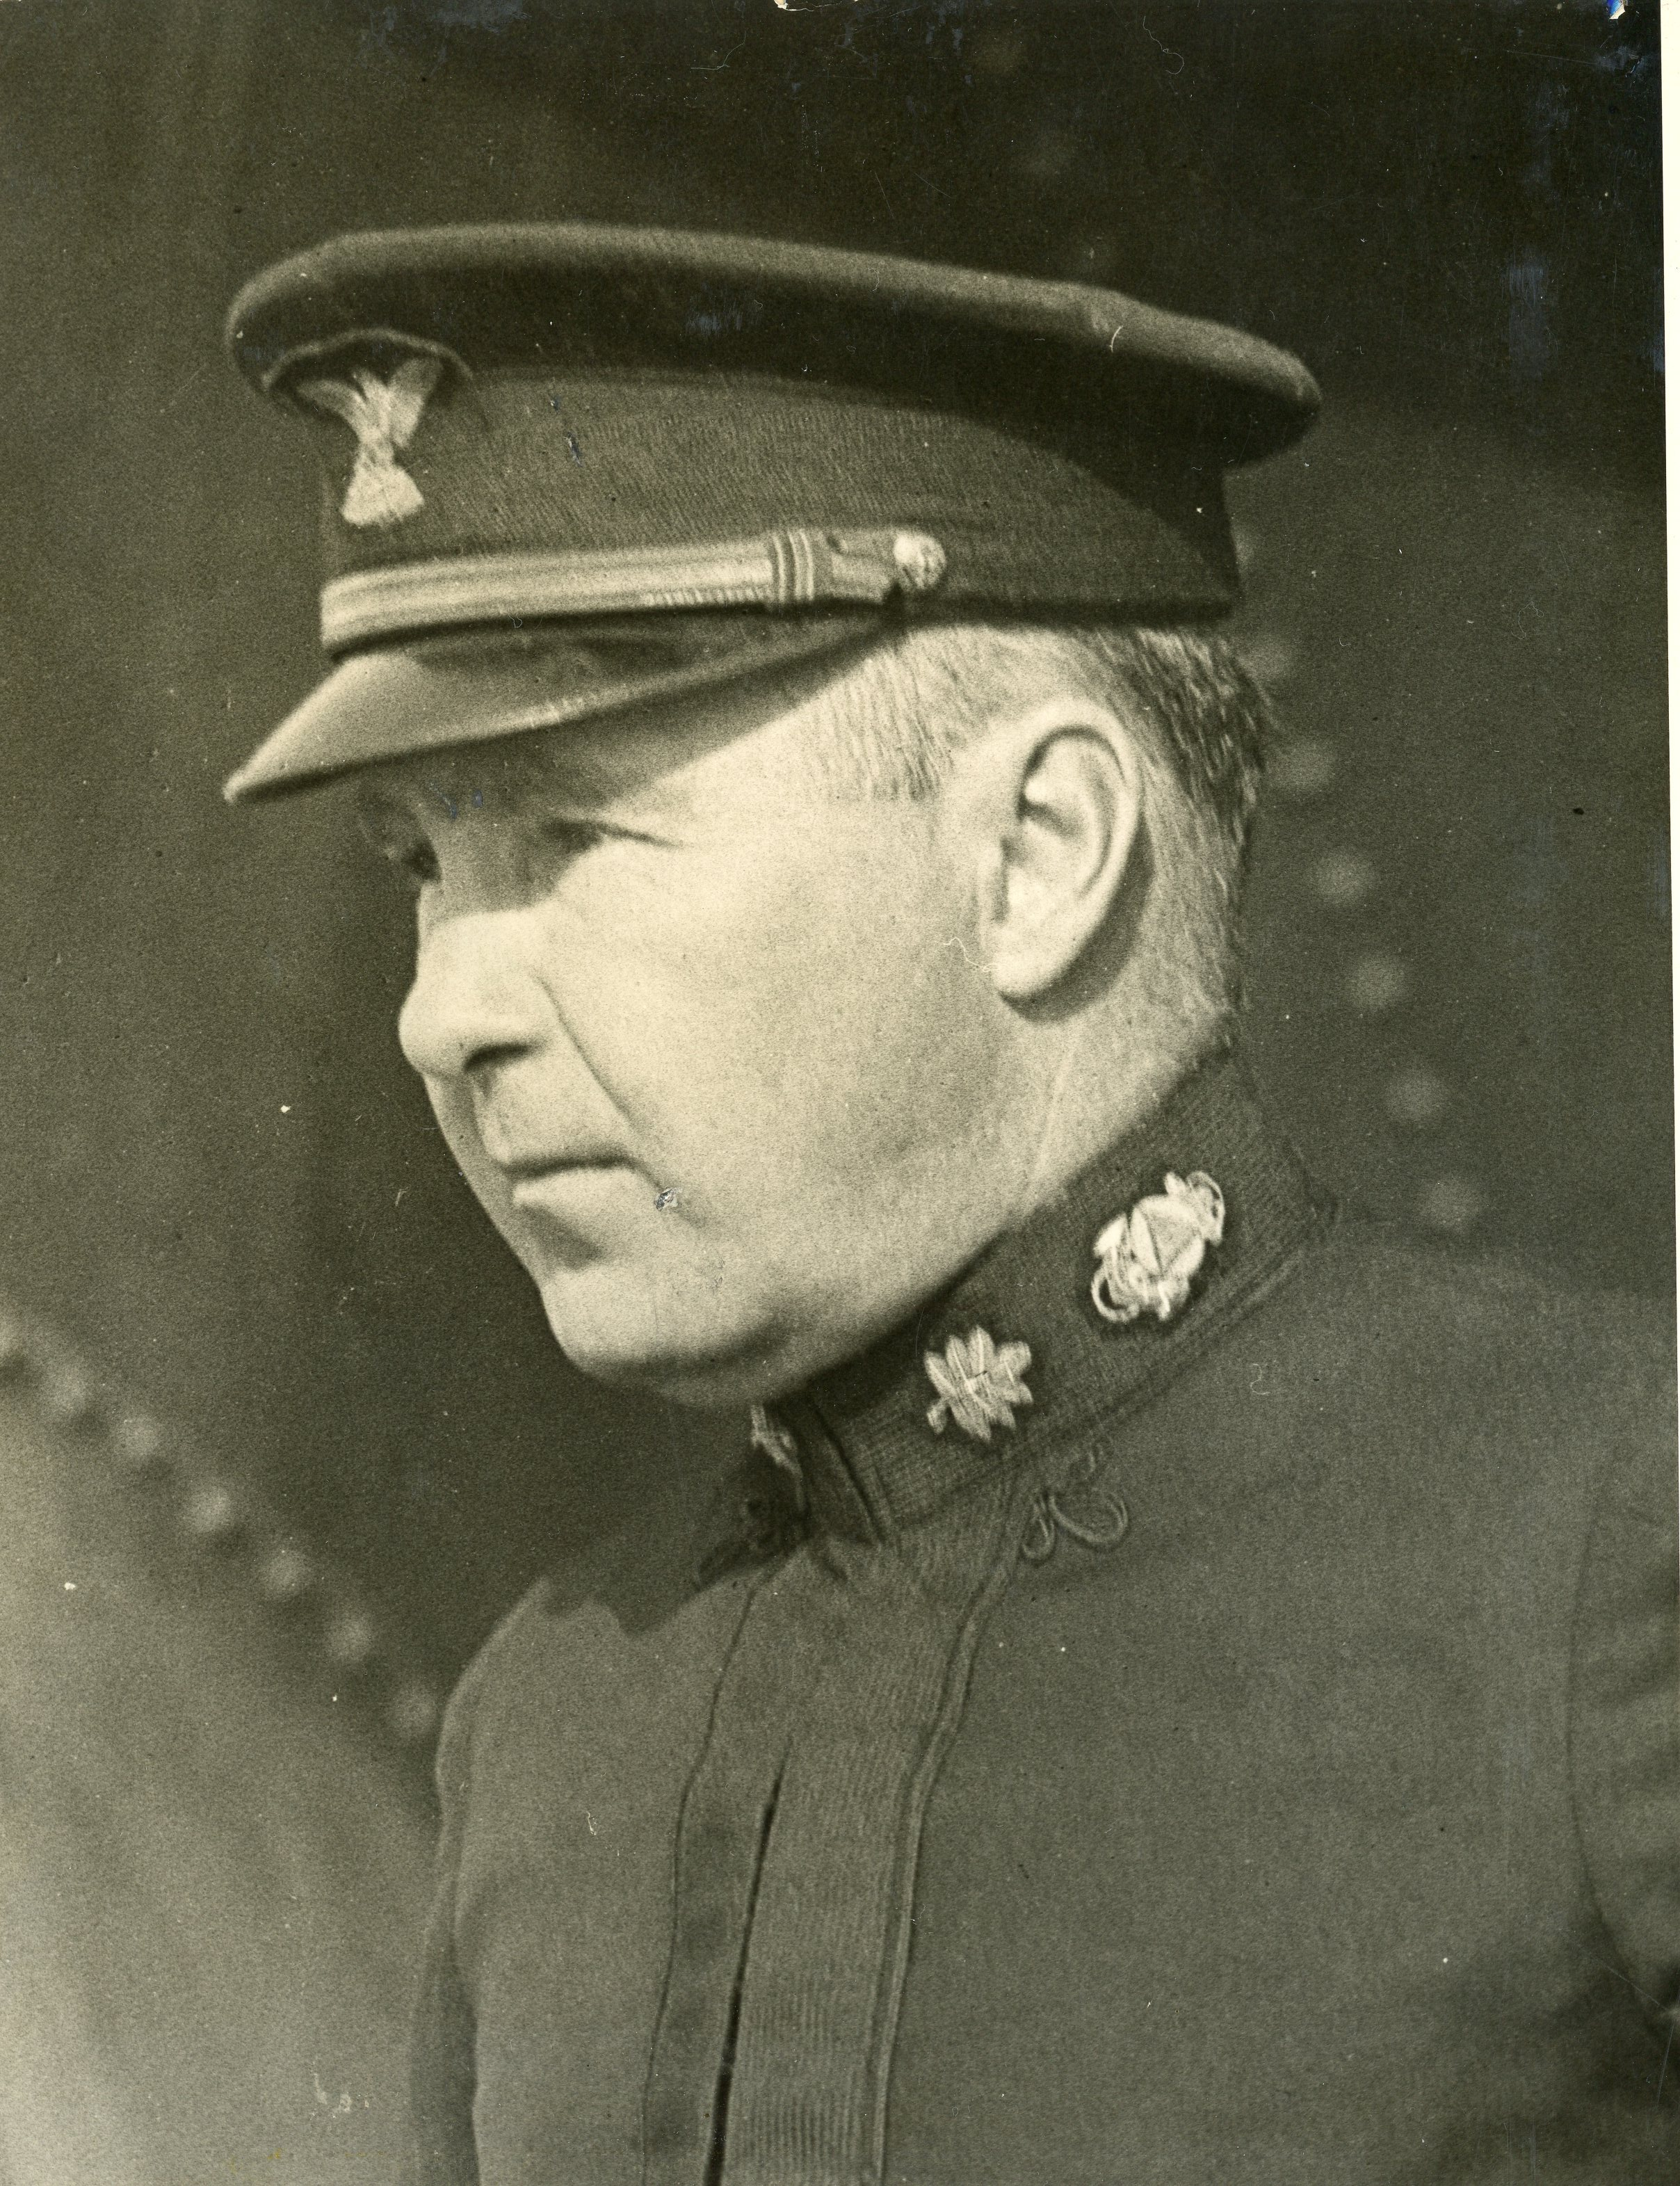 Lt. Cdr. R.L. Luce, commanding officer of the CGS steamer 'Pioneer'.